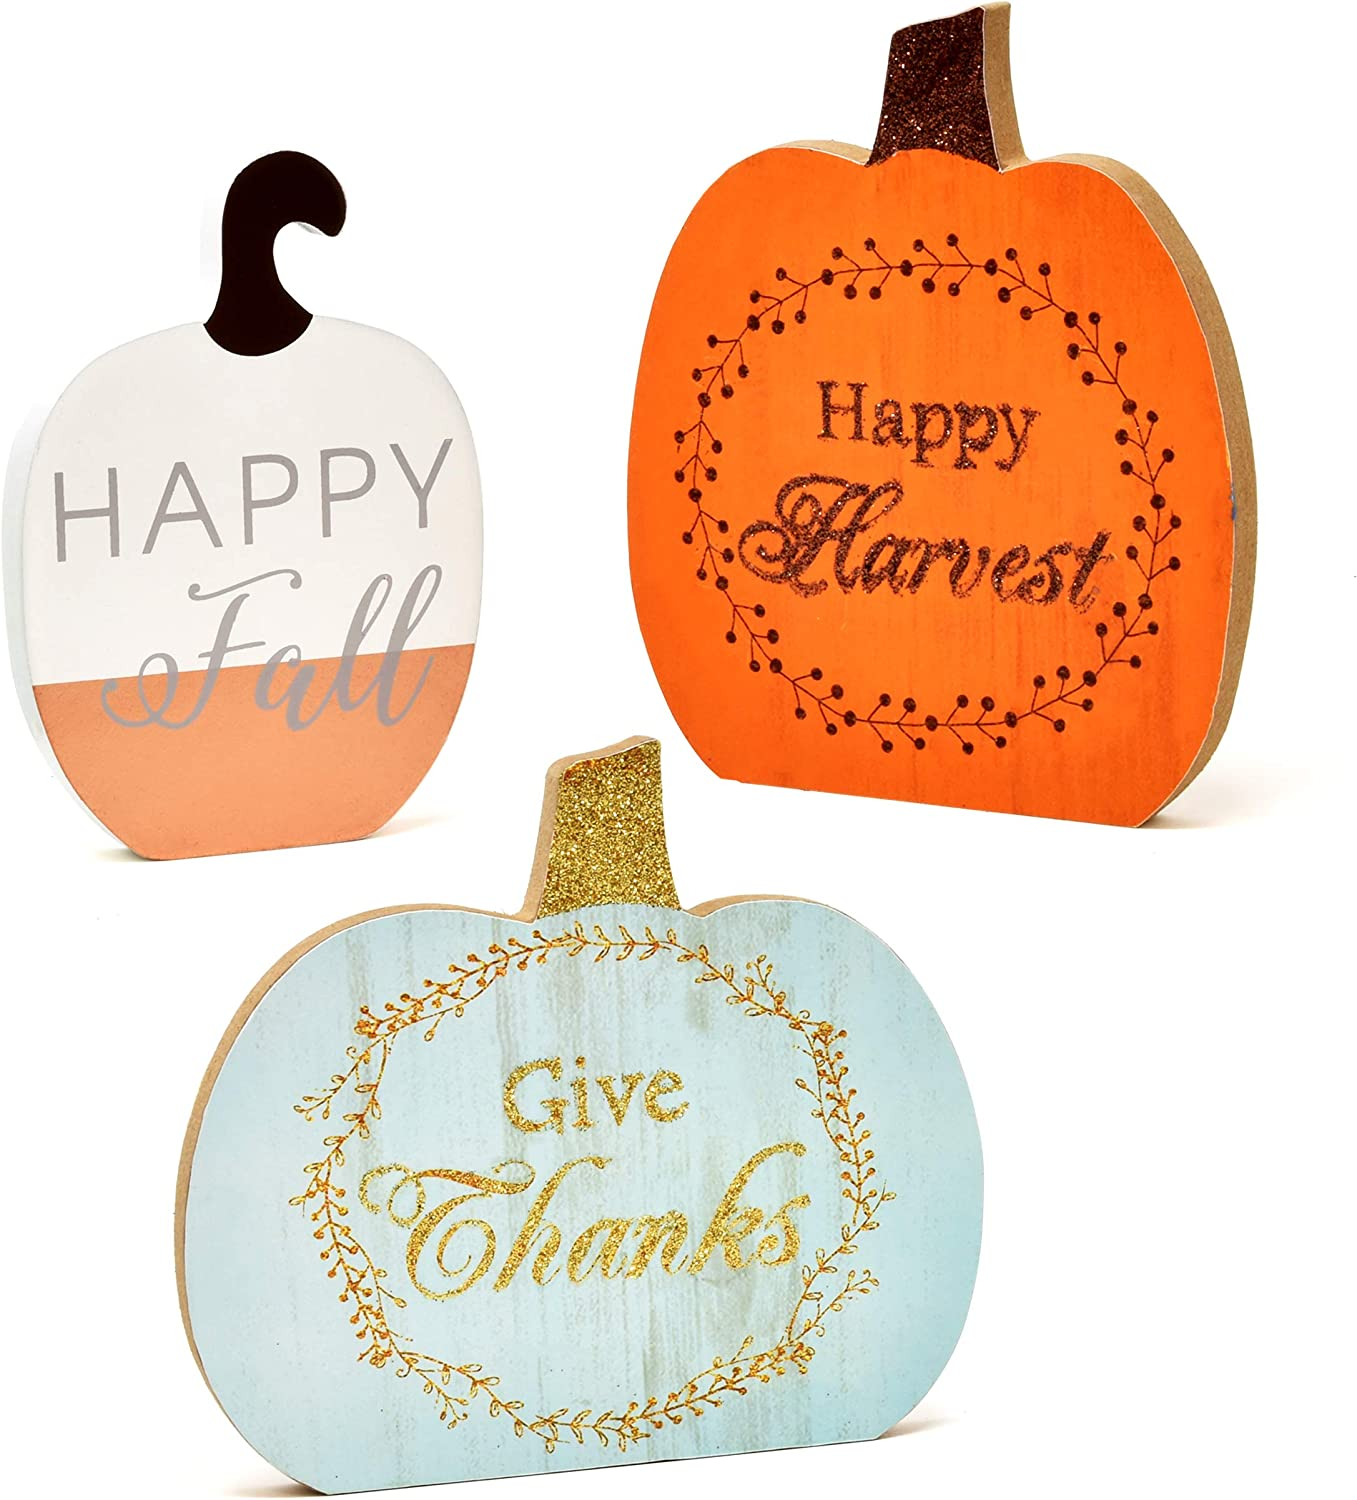 3 Thanksgiving Centerpiece Table Decor Fall Decorations Pumpkins Harvest Autumn Pumpkin Centerpieces for Home Kitchen Featuring Happy Fall Harvest Give Thanks for Indoor Desk Decoration